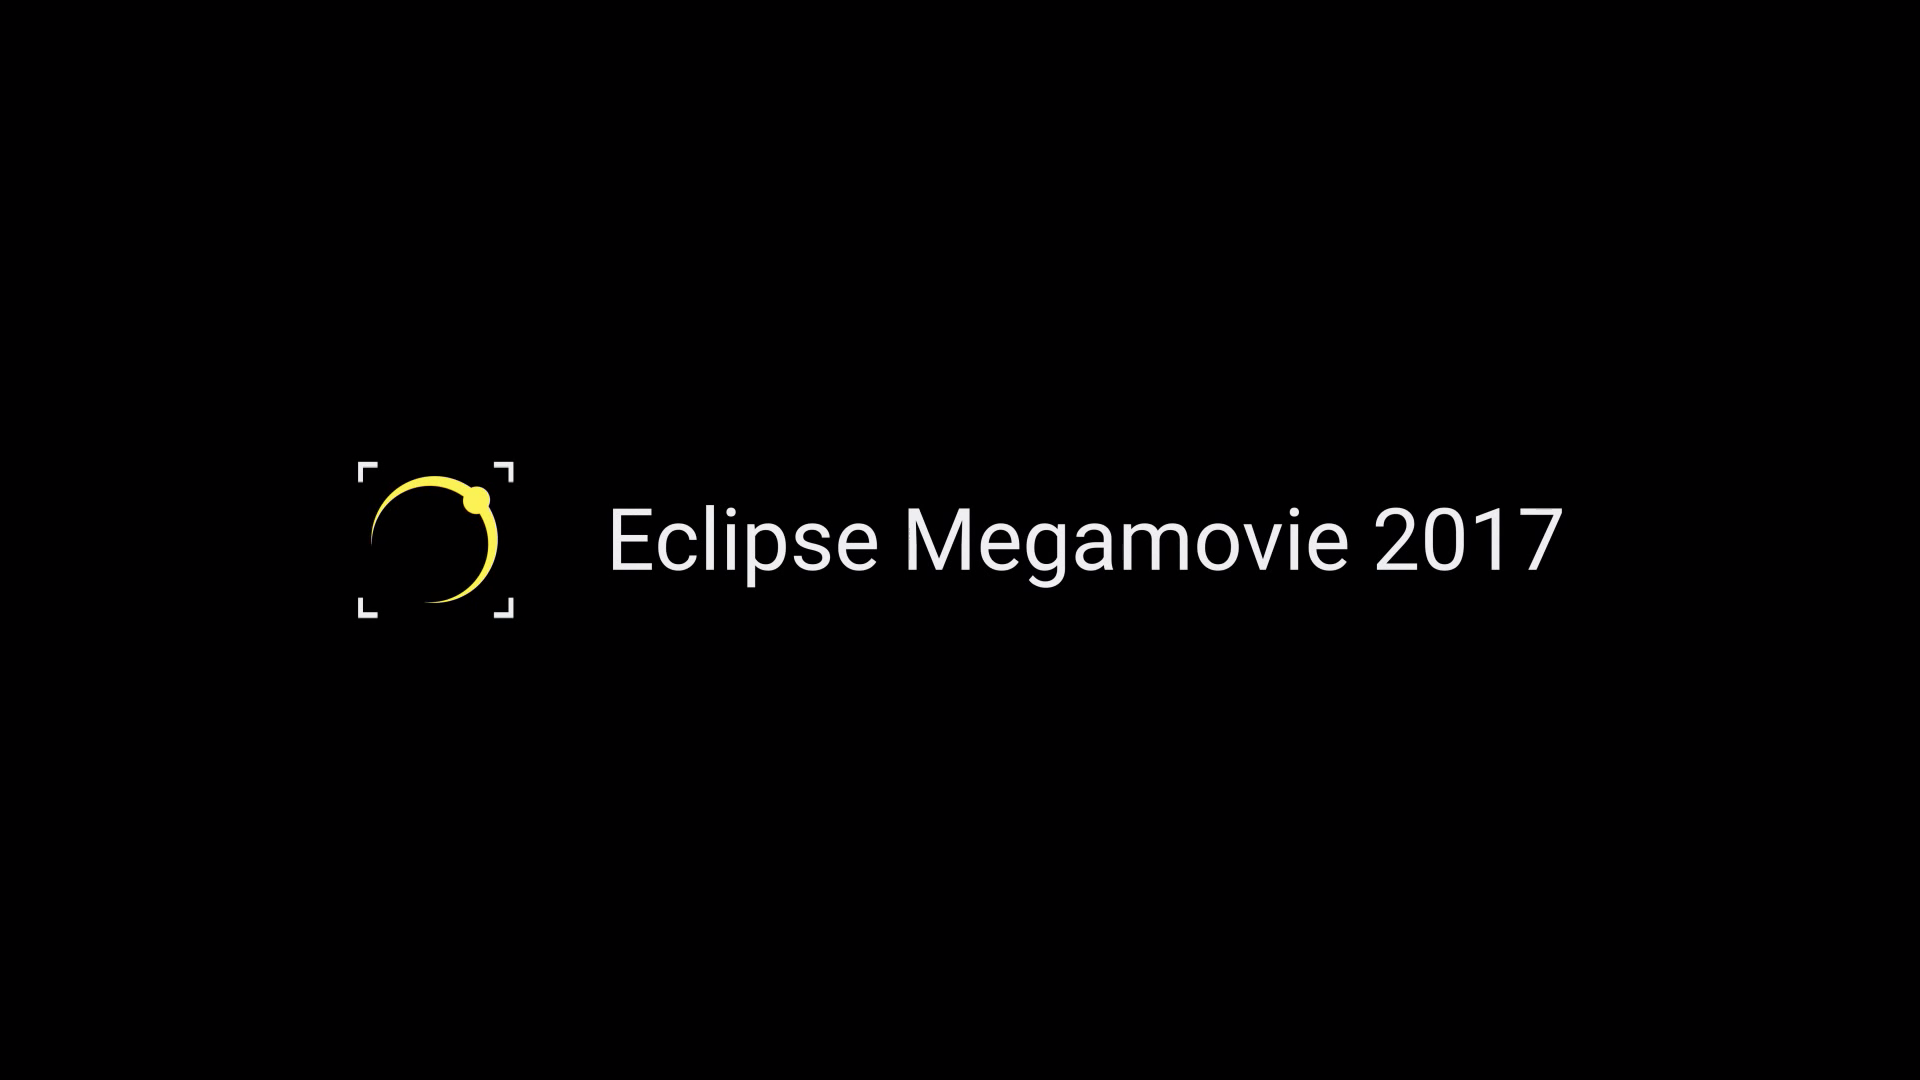 Eclipse Megamovie 2017